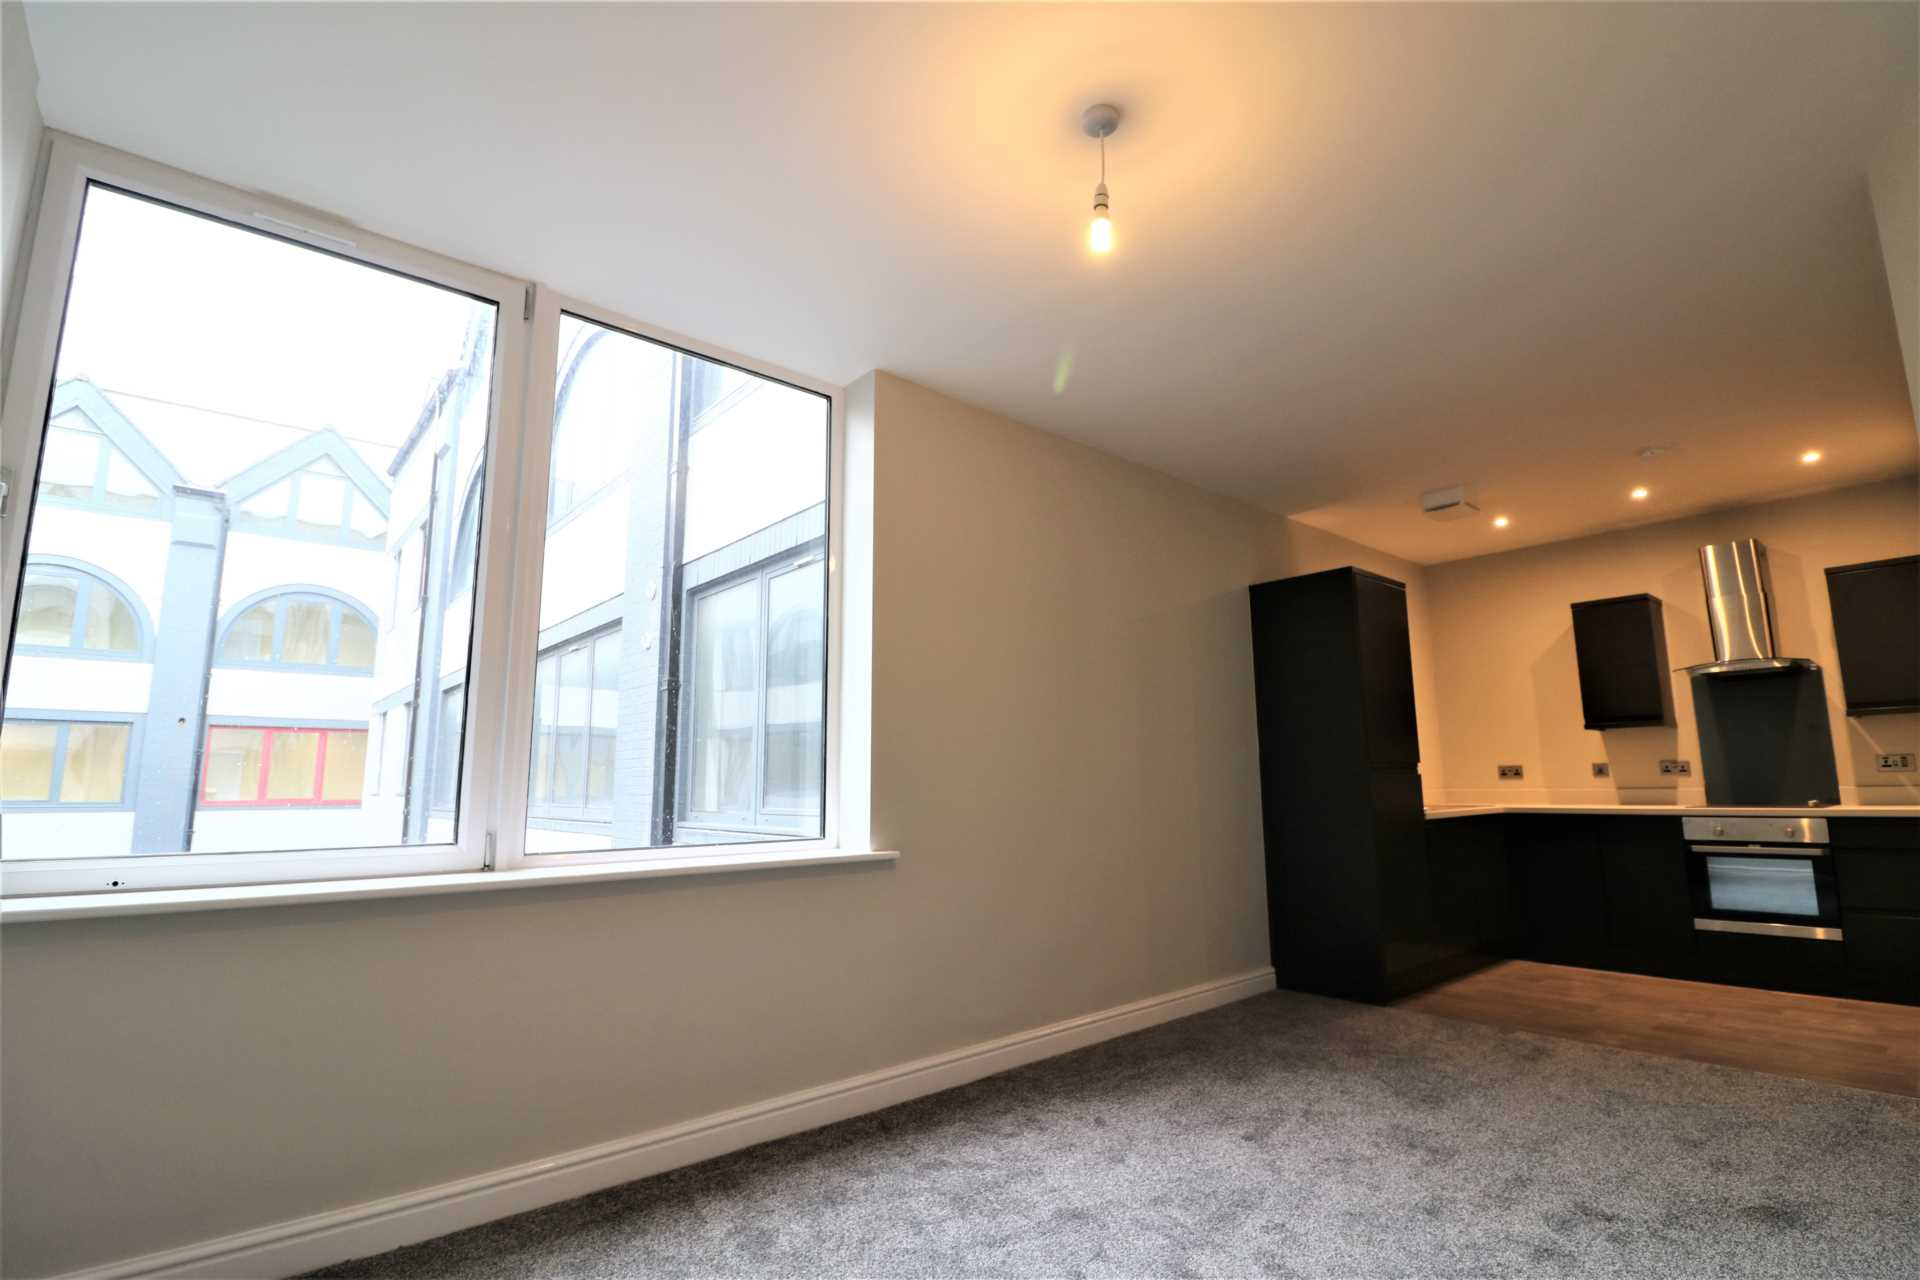 Apartment - Mersey View, Image 4